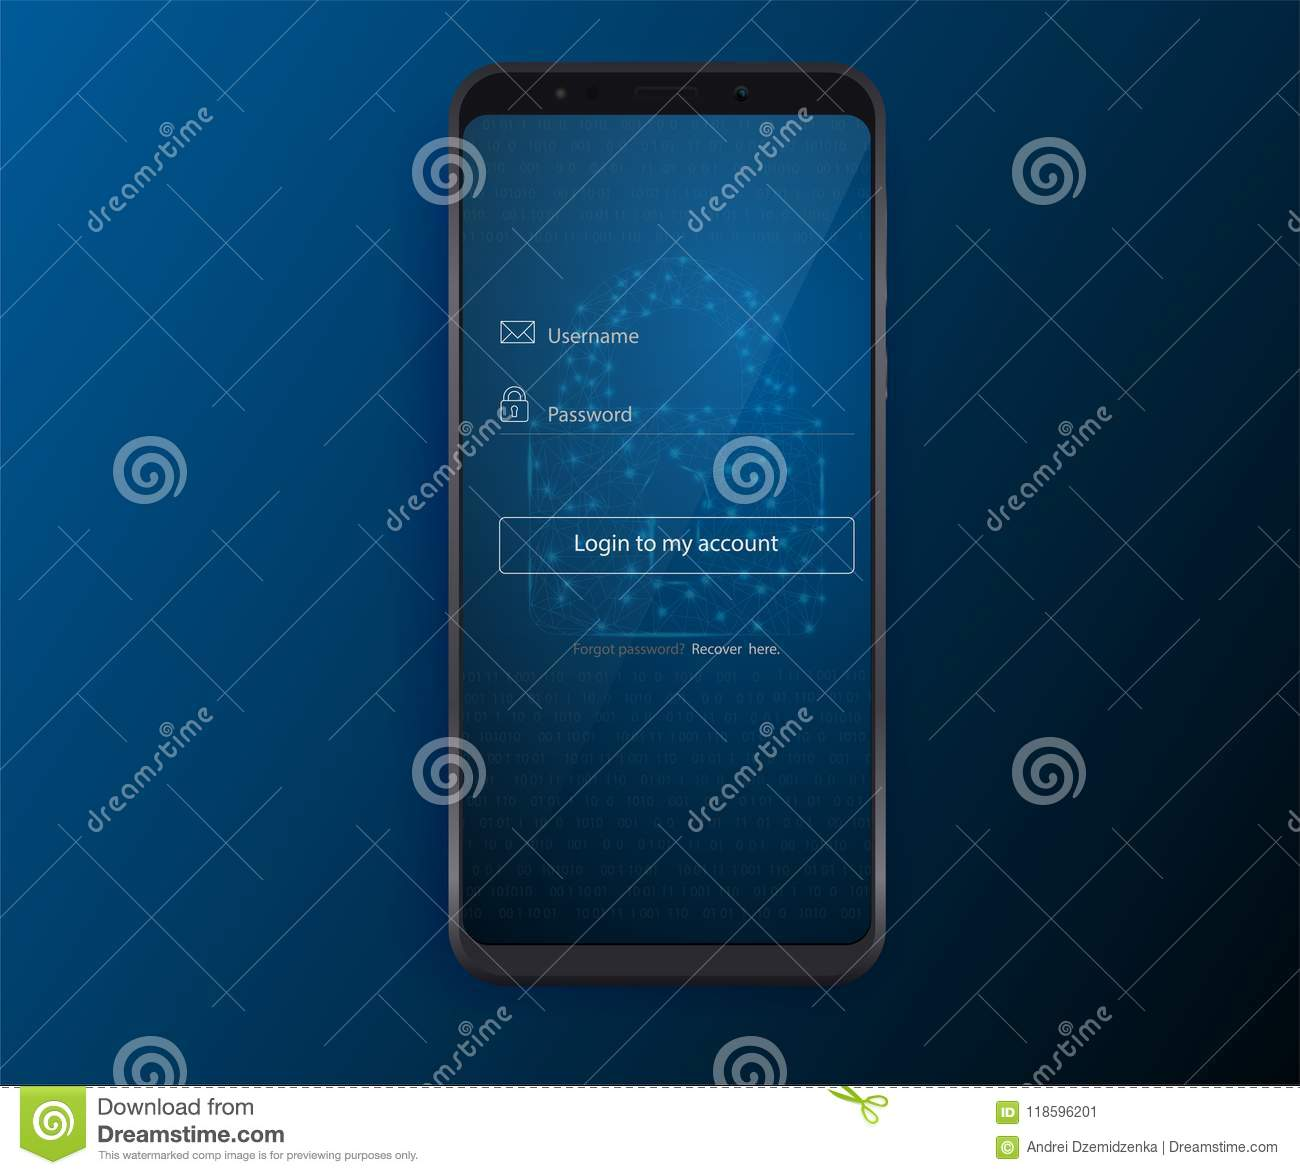 Clean Mobile UI Design Concept. Login Application with Password Form Window. Flat Web Icons. Vector